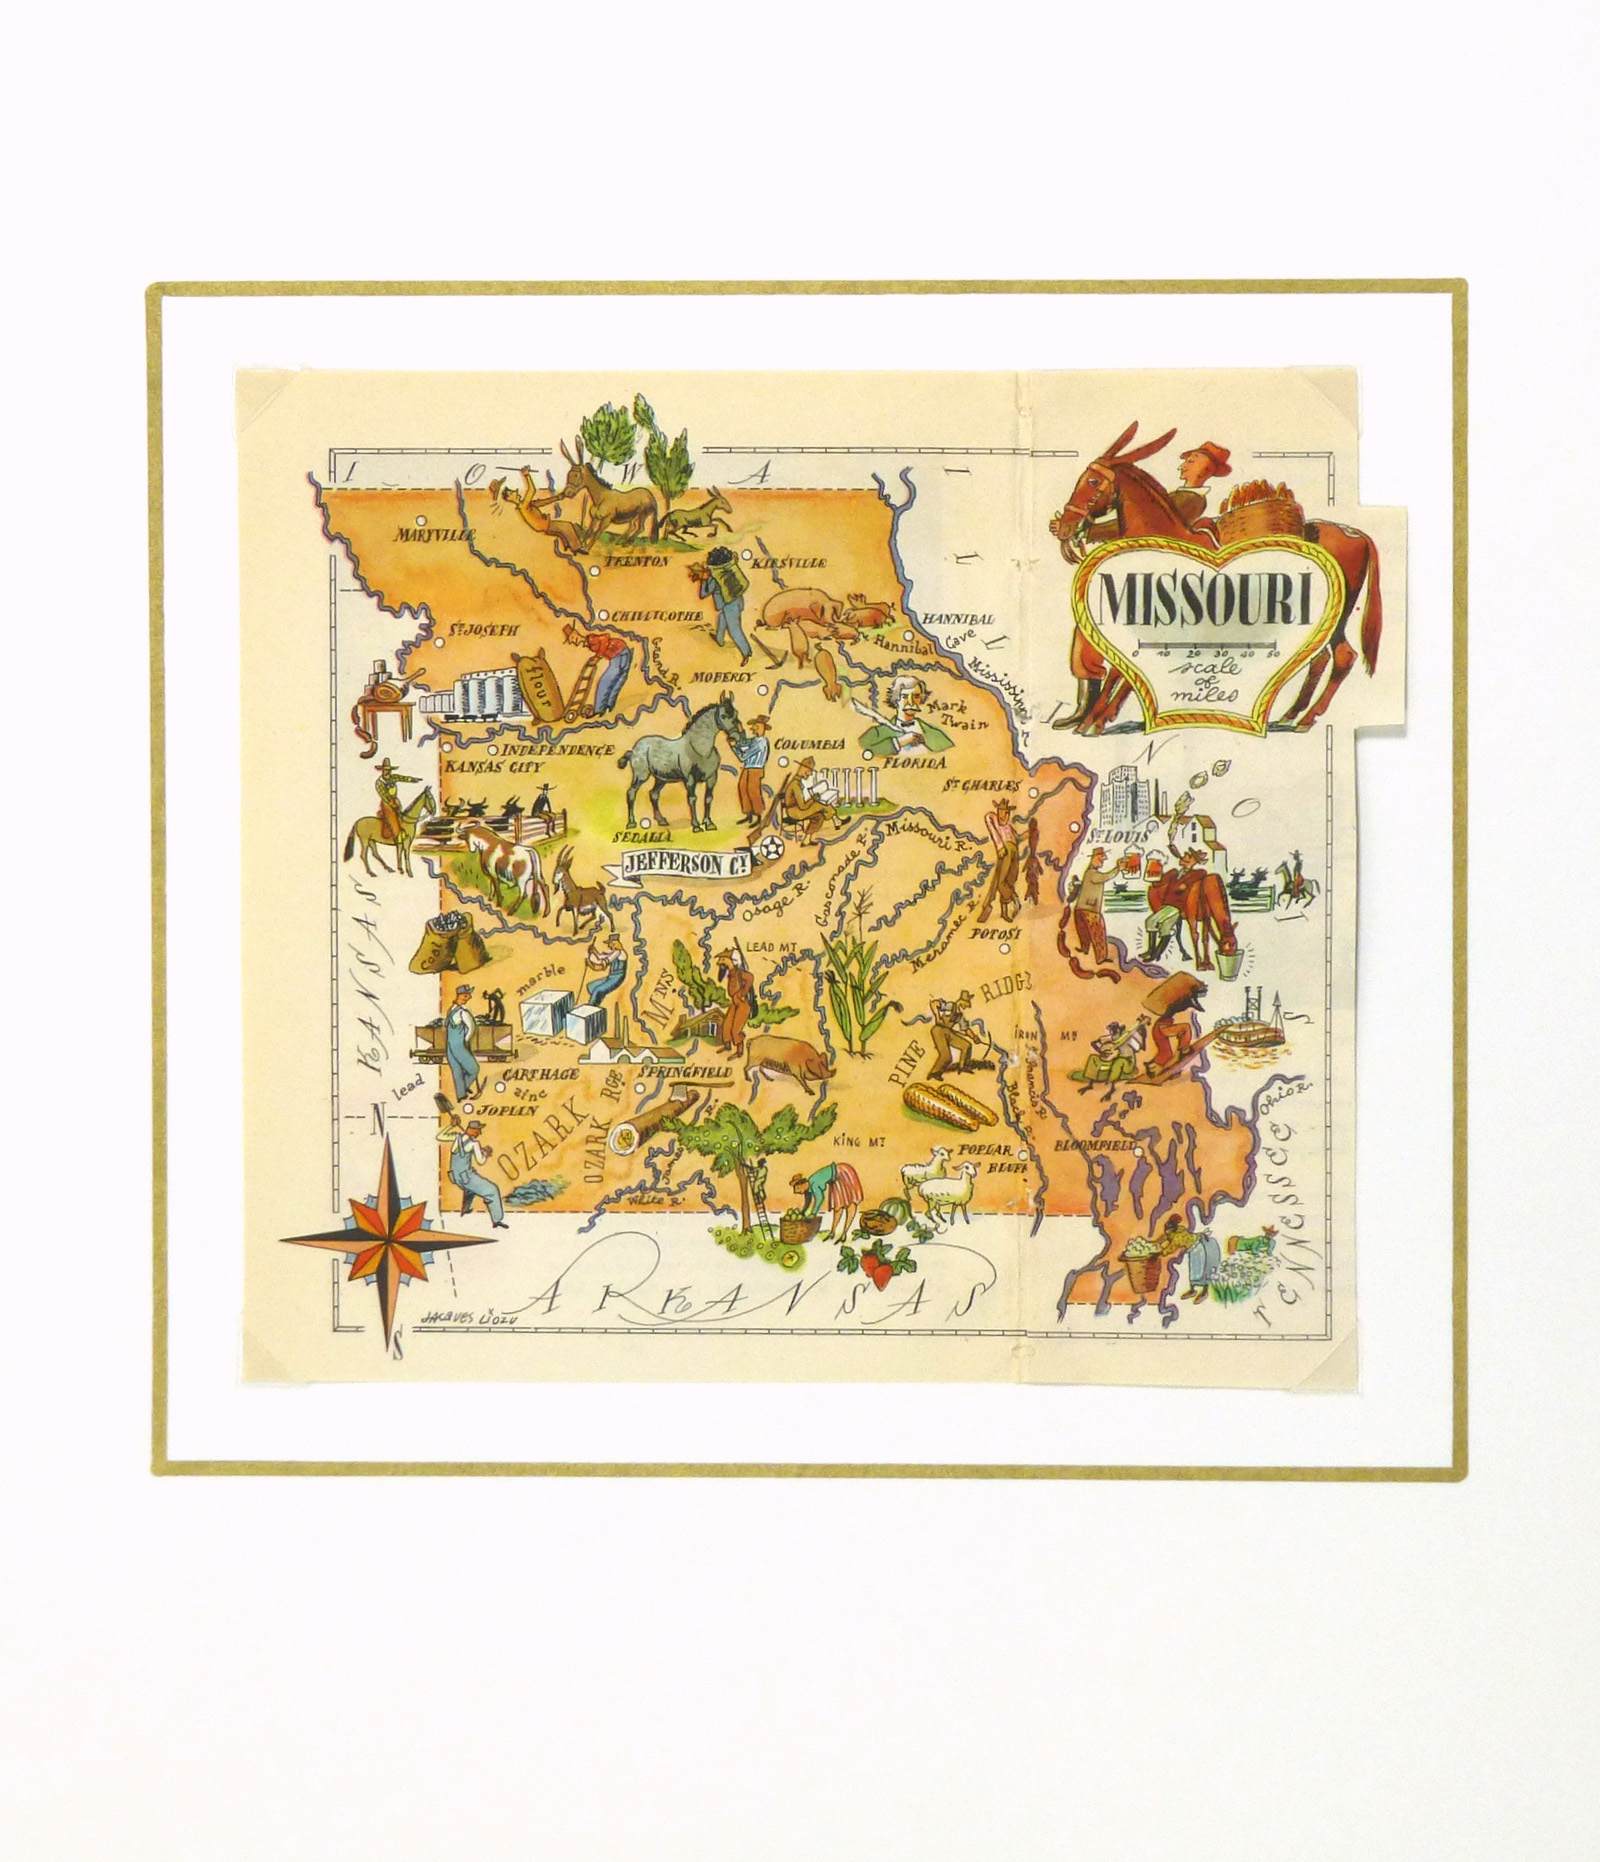 Missouri Pictorial Map, 1946-matted-6270K